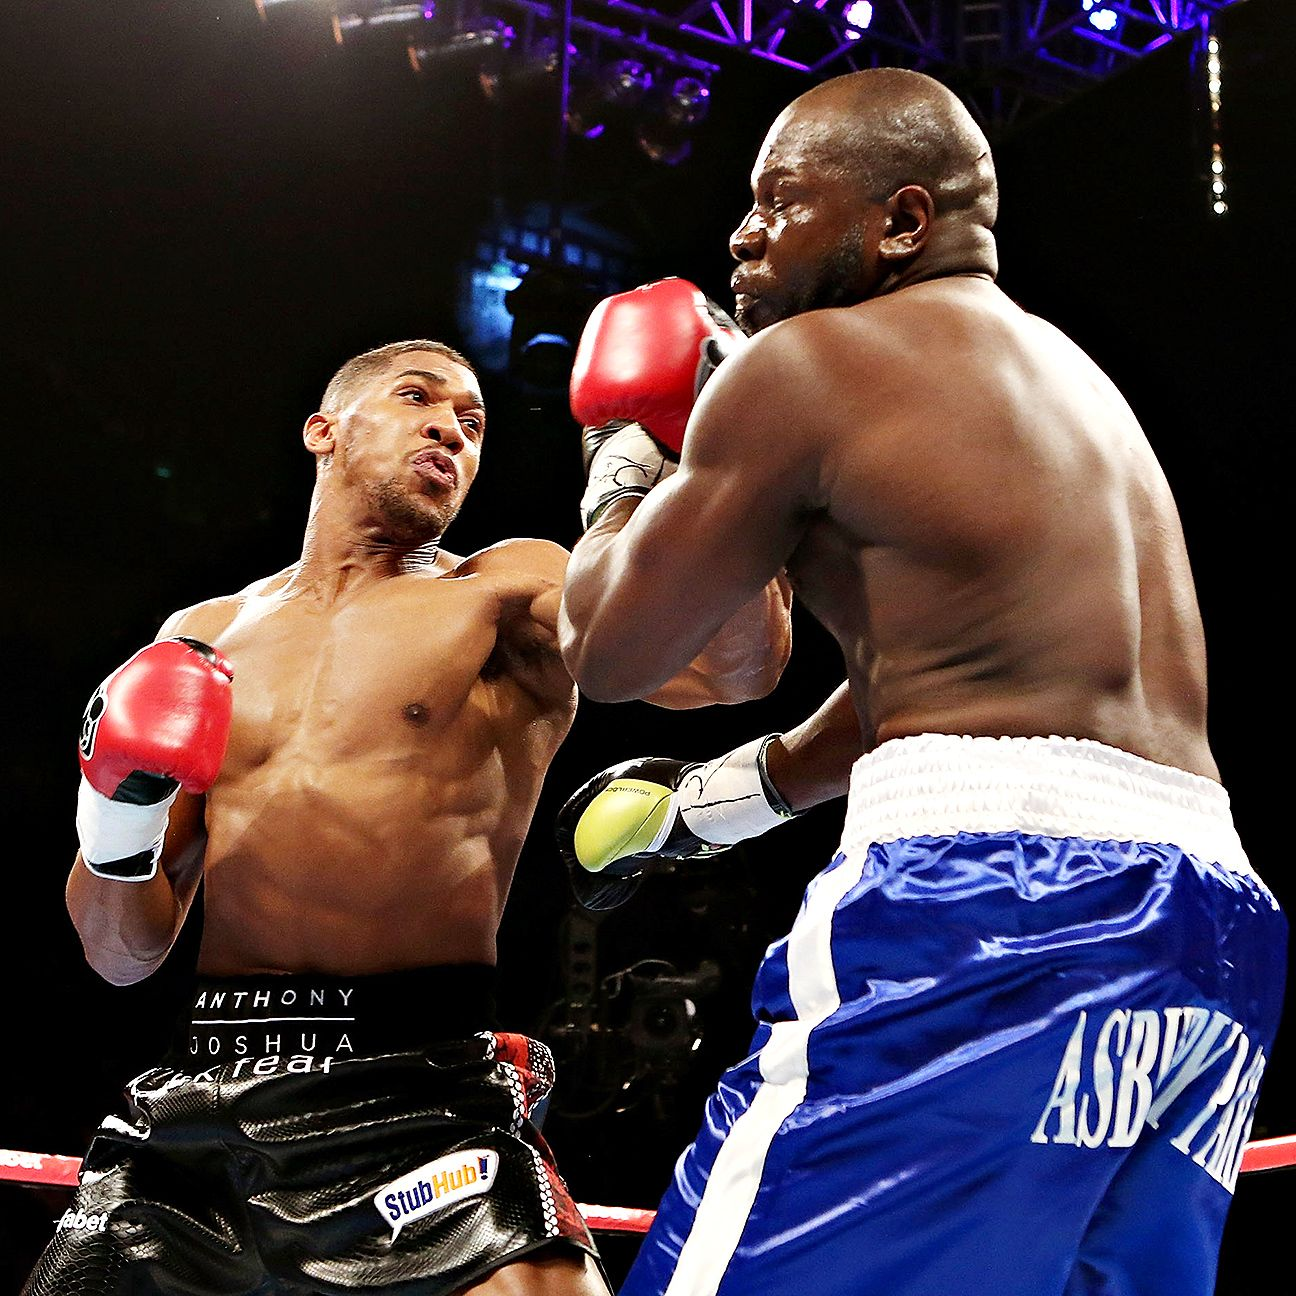 Anthony Joshua Wants To Knock Out Tyson Fury And Take His